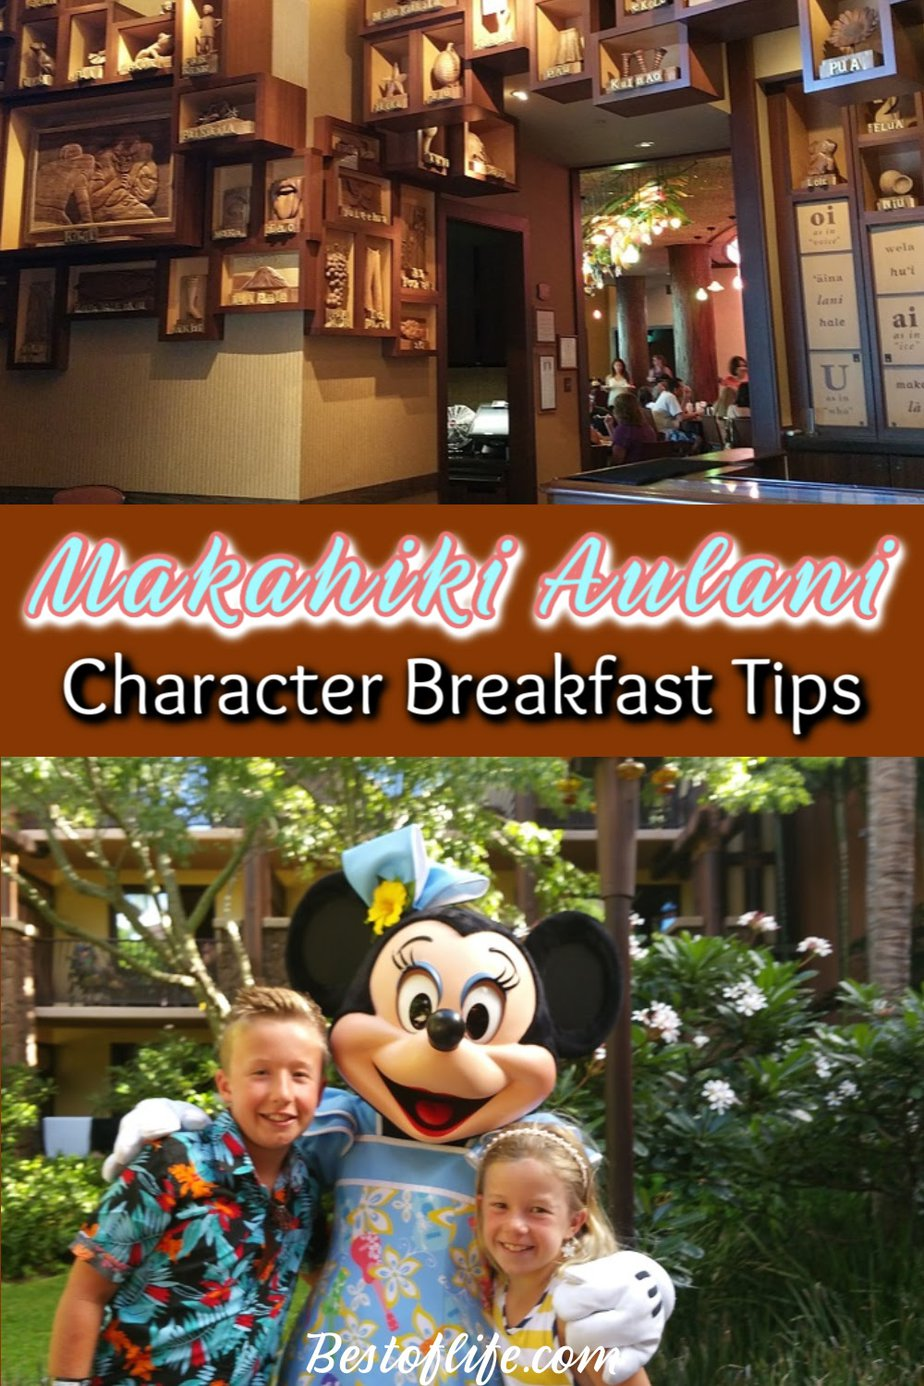 Traveling to the Disney Aulani Resort is a treasured family experience. Make the most of your trip with these Makahiki Aulani breakfast tips. Makahiki Aulani Tips | Aulani Dining Reservations | Aulani Luau | Ama 'Ama Aulani | Where to Eat at Aulani | Aulani Character Breakfast | Tips for Aulani Vacation | Aulani Resort Tips | Hawaii Travel Tips #aulani #dining via @thebestoflife